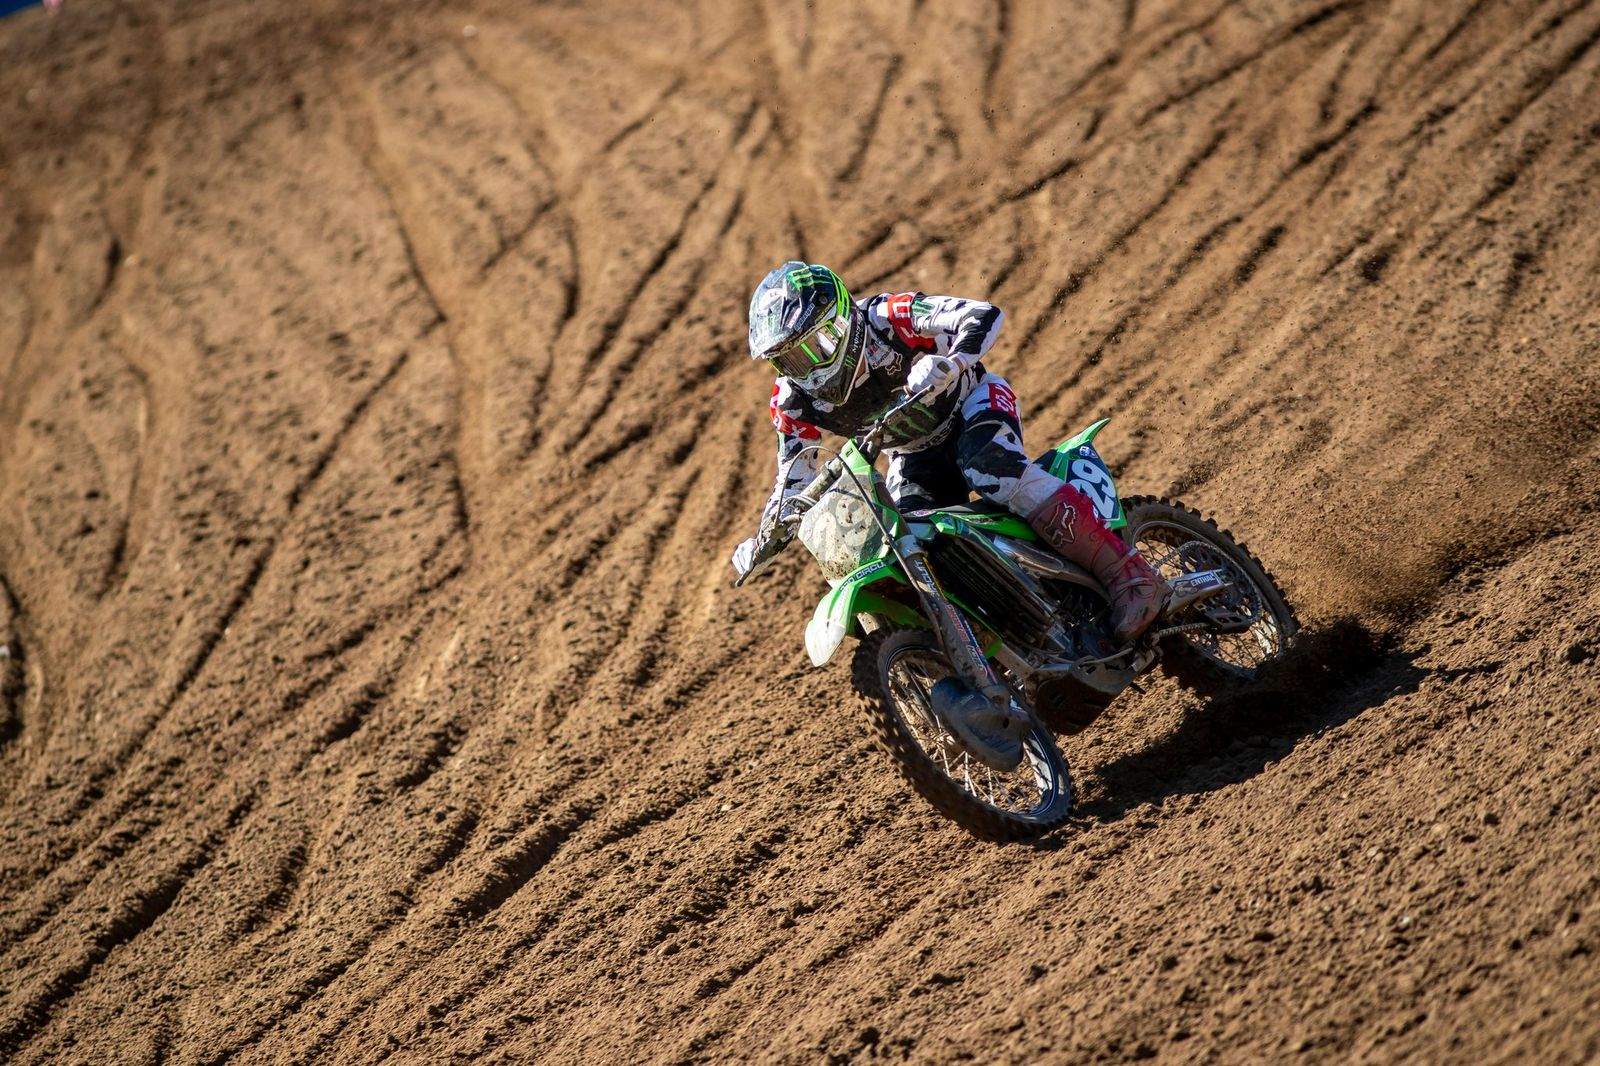 Monster Energy Pro Circuit Kawasaki's McAdoo Back in Top-10 At RedBud